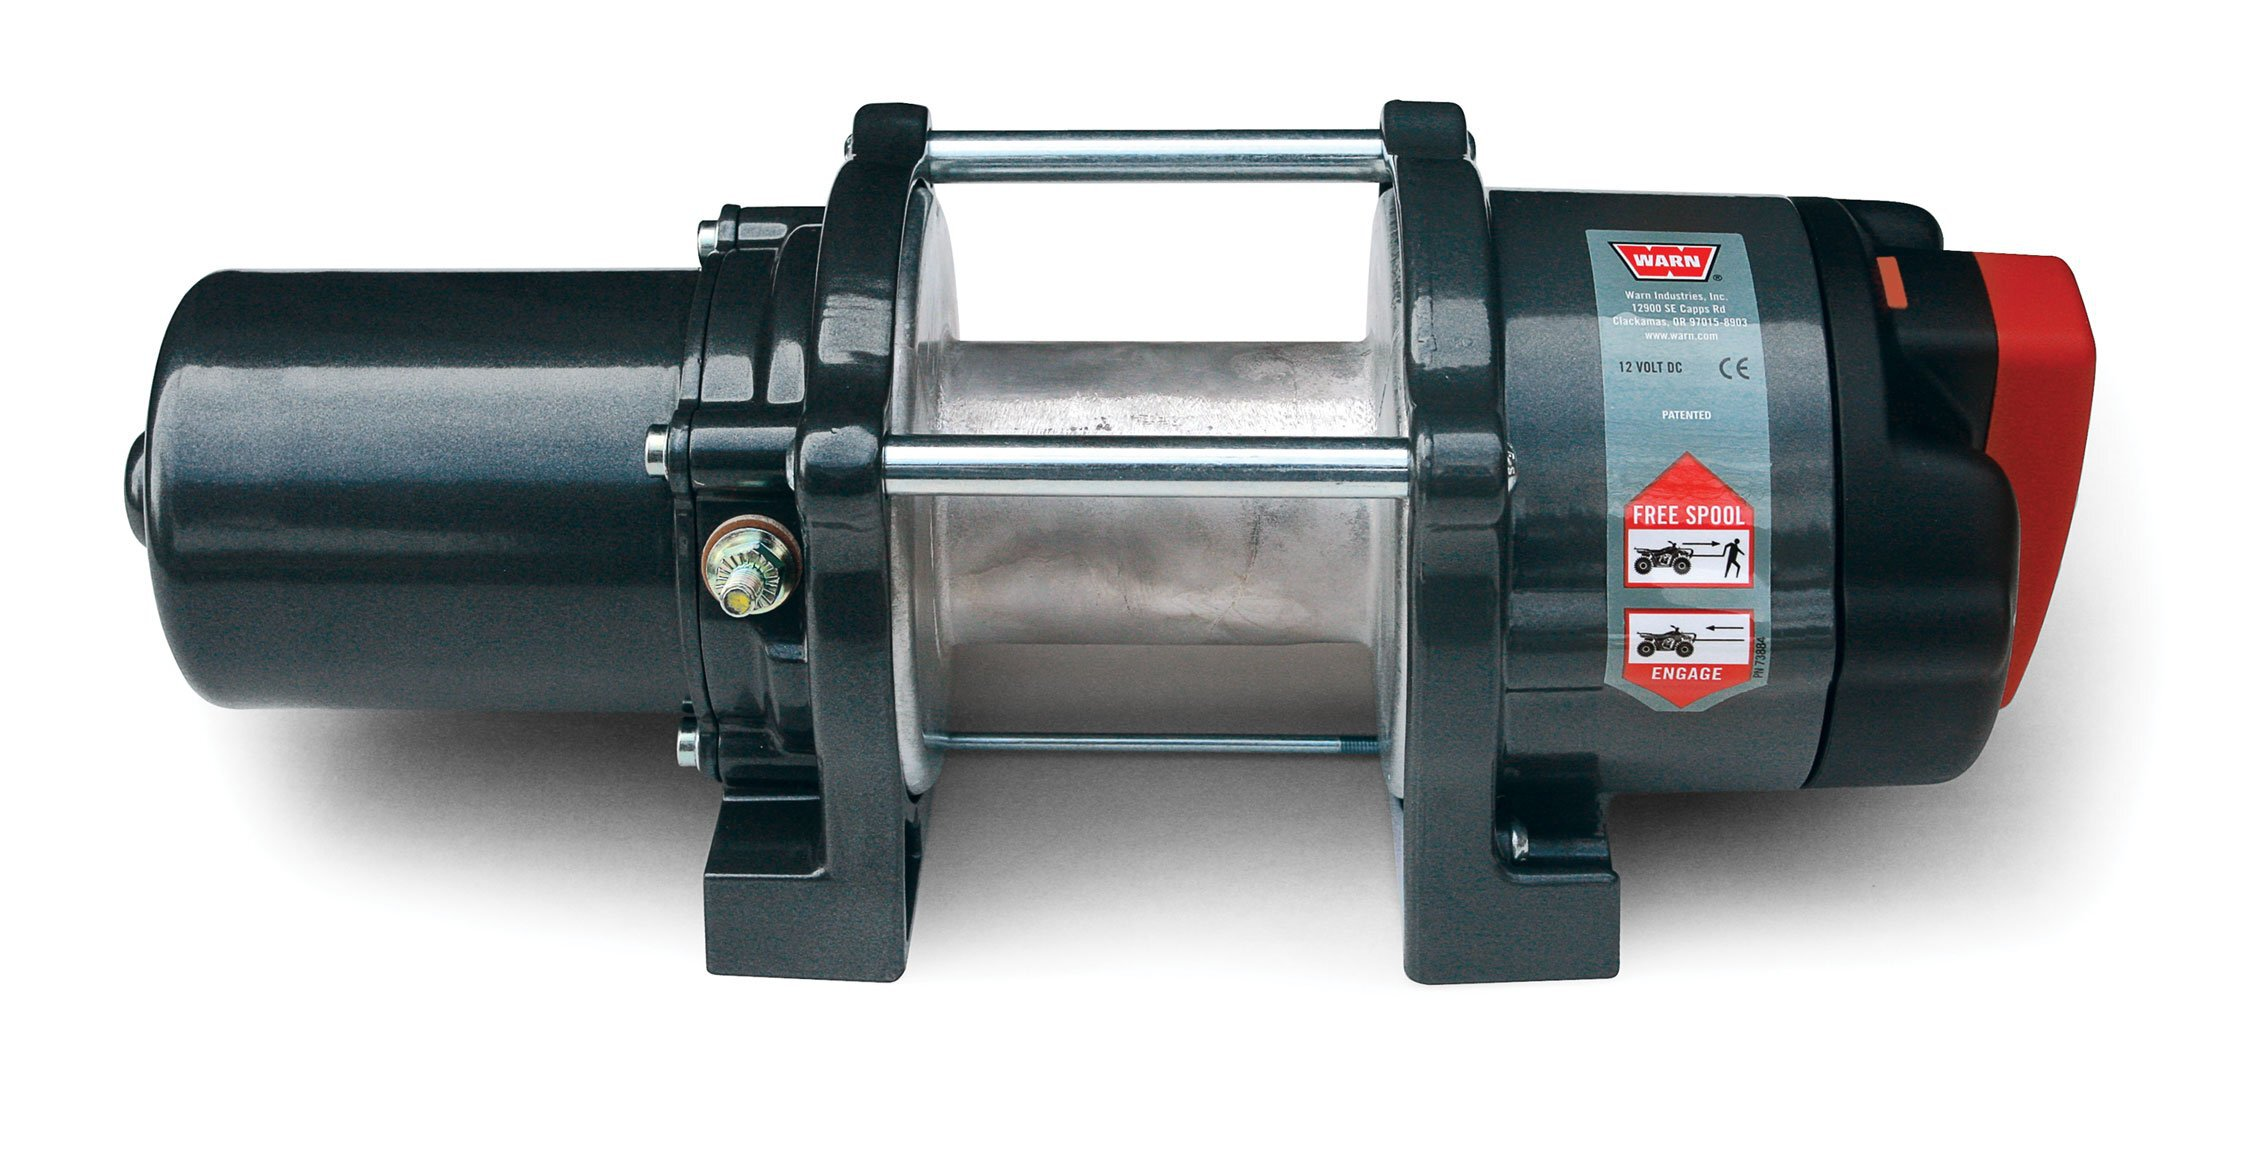 WINCH SUB PV3500 REPLACEMENT CORE